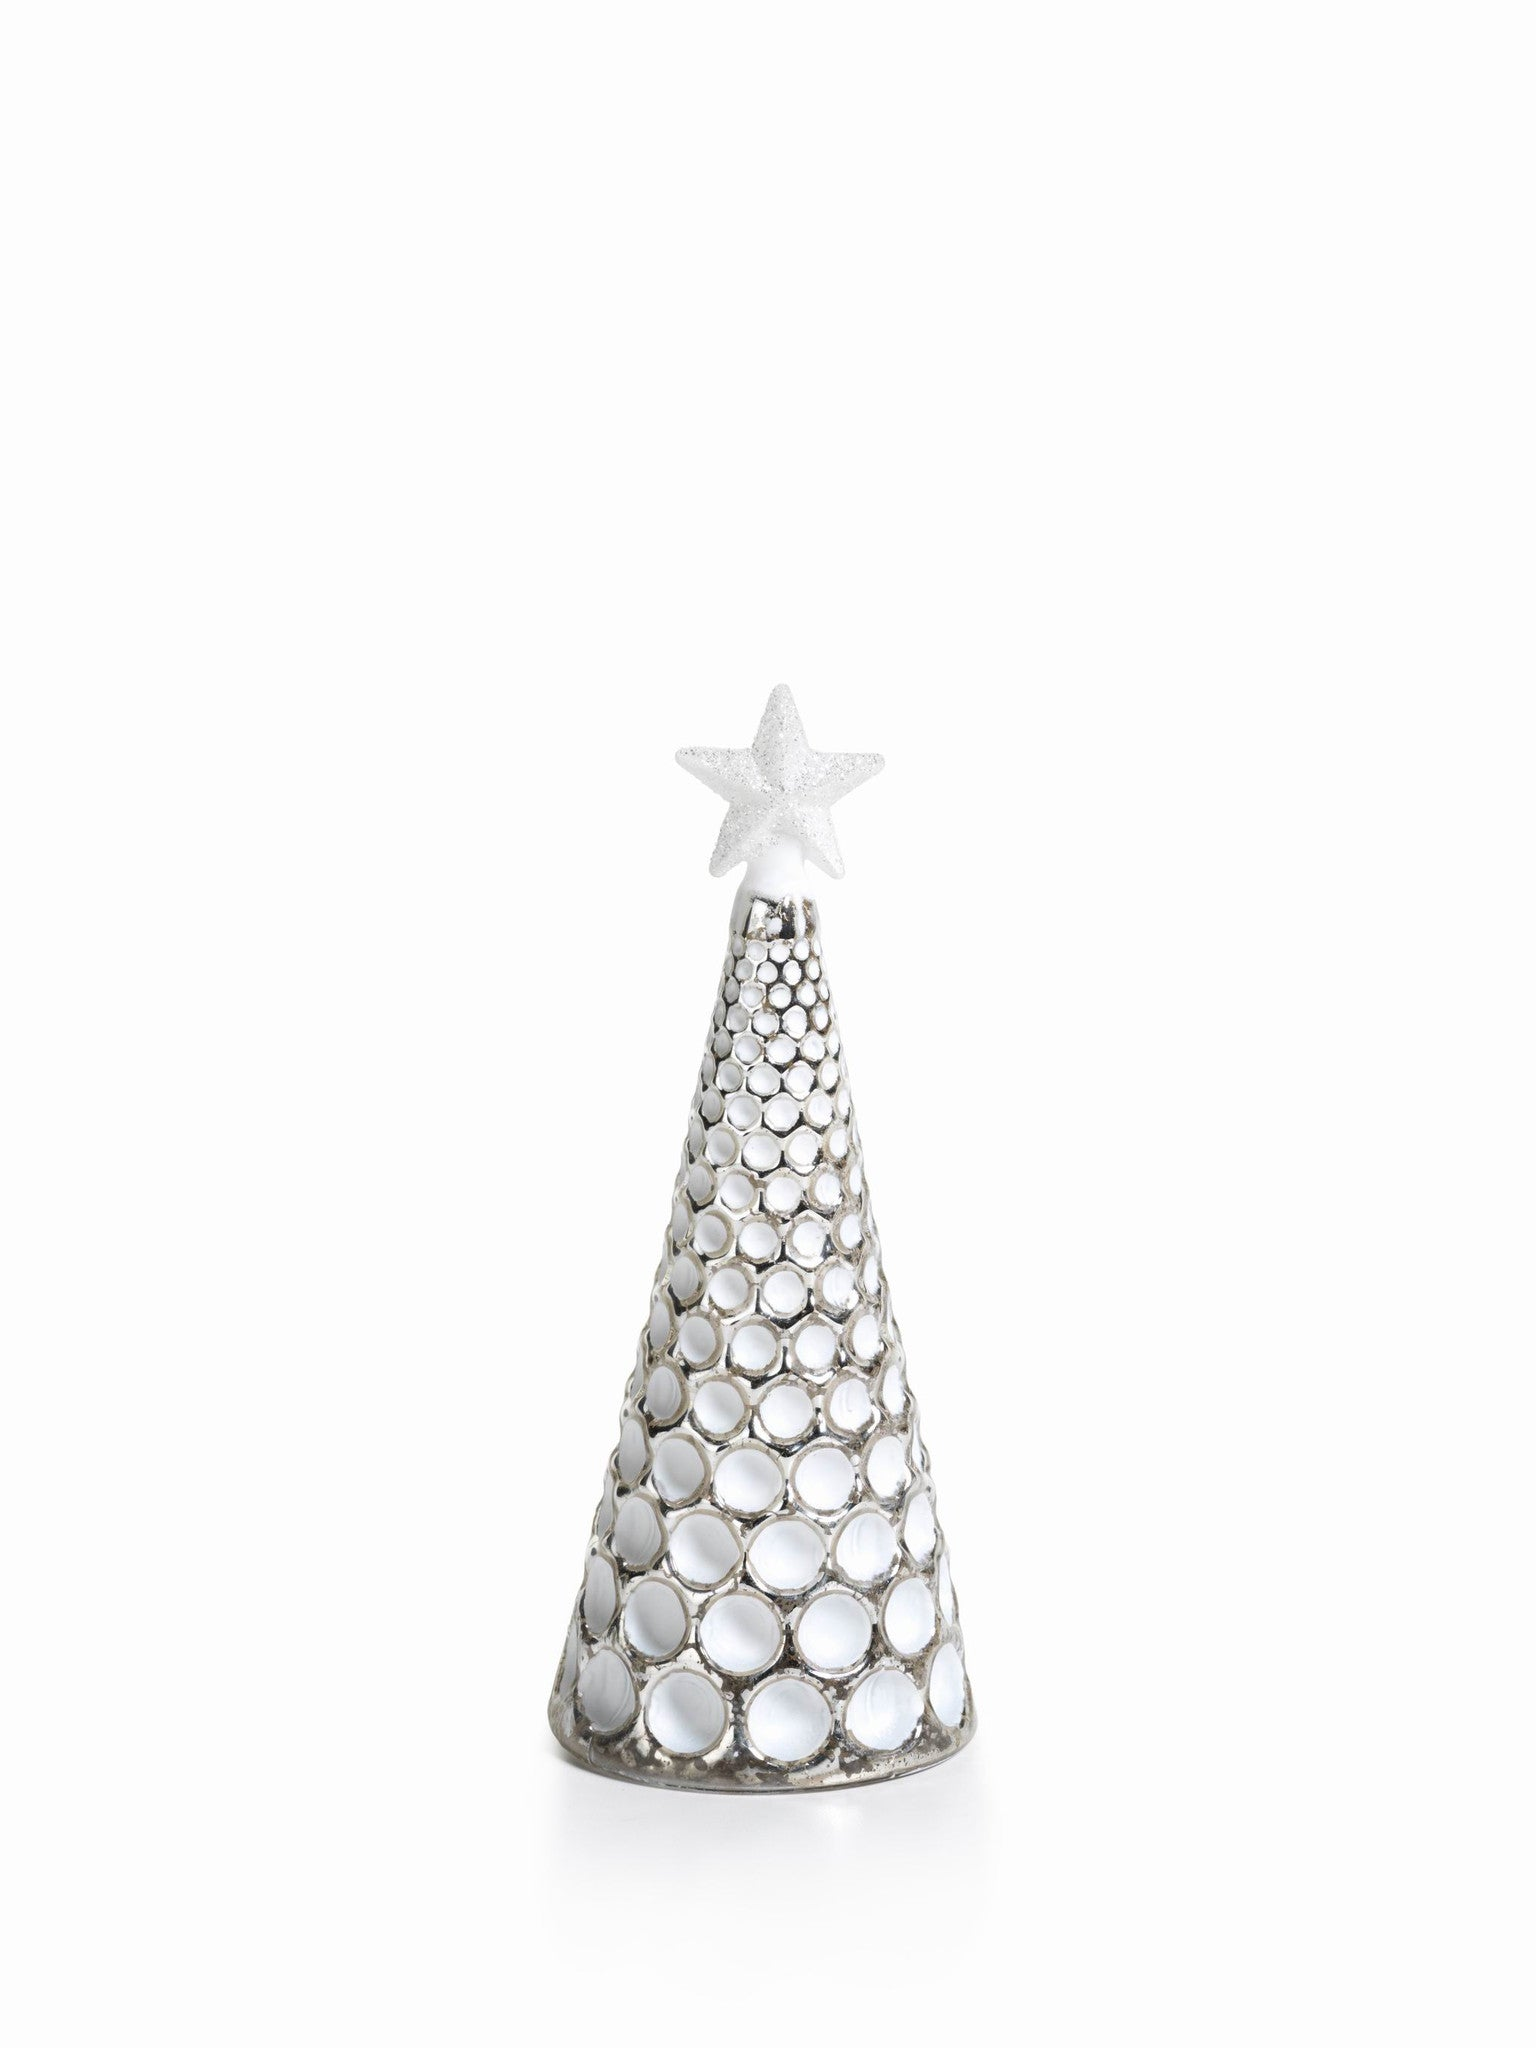 LED Glass Decorative Tree - Silver - Set of 6 - Medium / Dimple Cut - CARLYLE AVENUE - 16